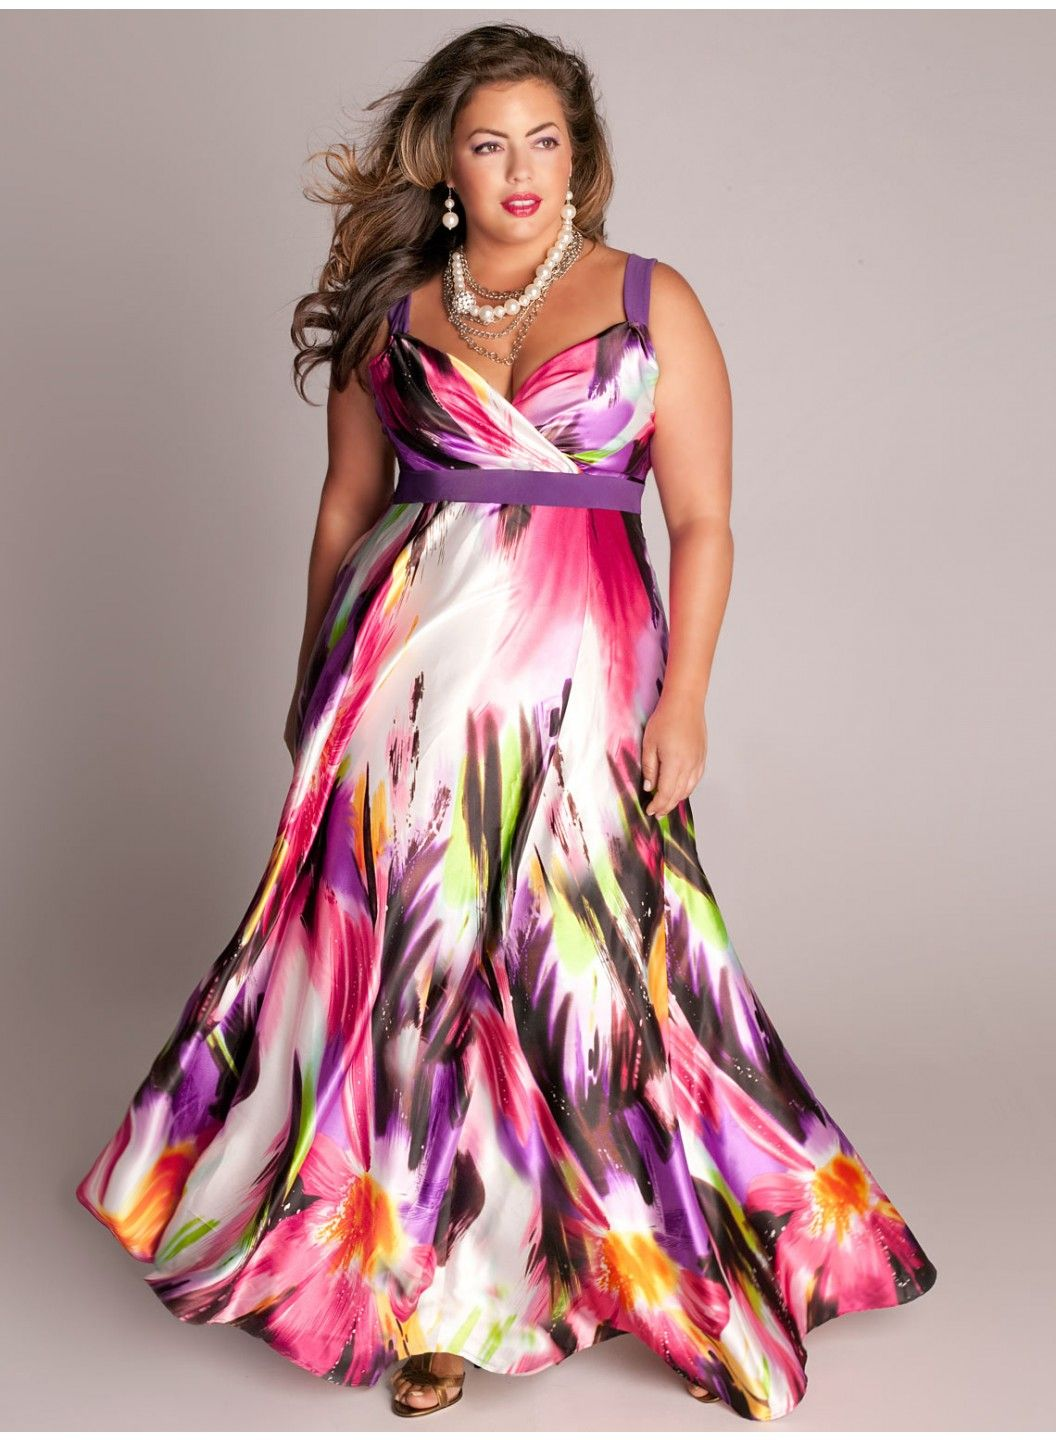 summer dresses for plus size women maxi | Fashion | Pinterest ...